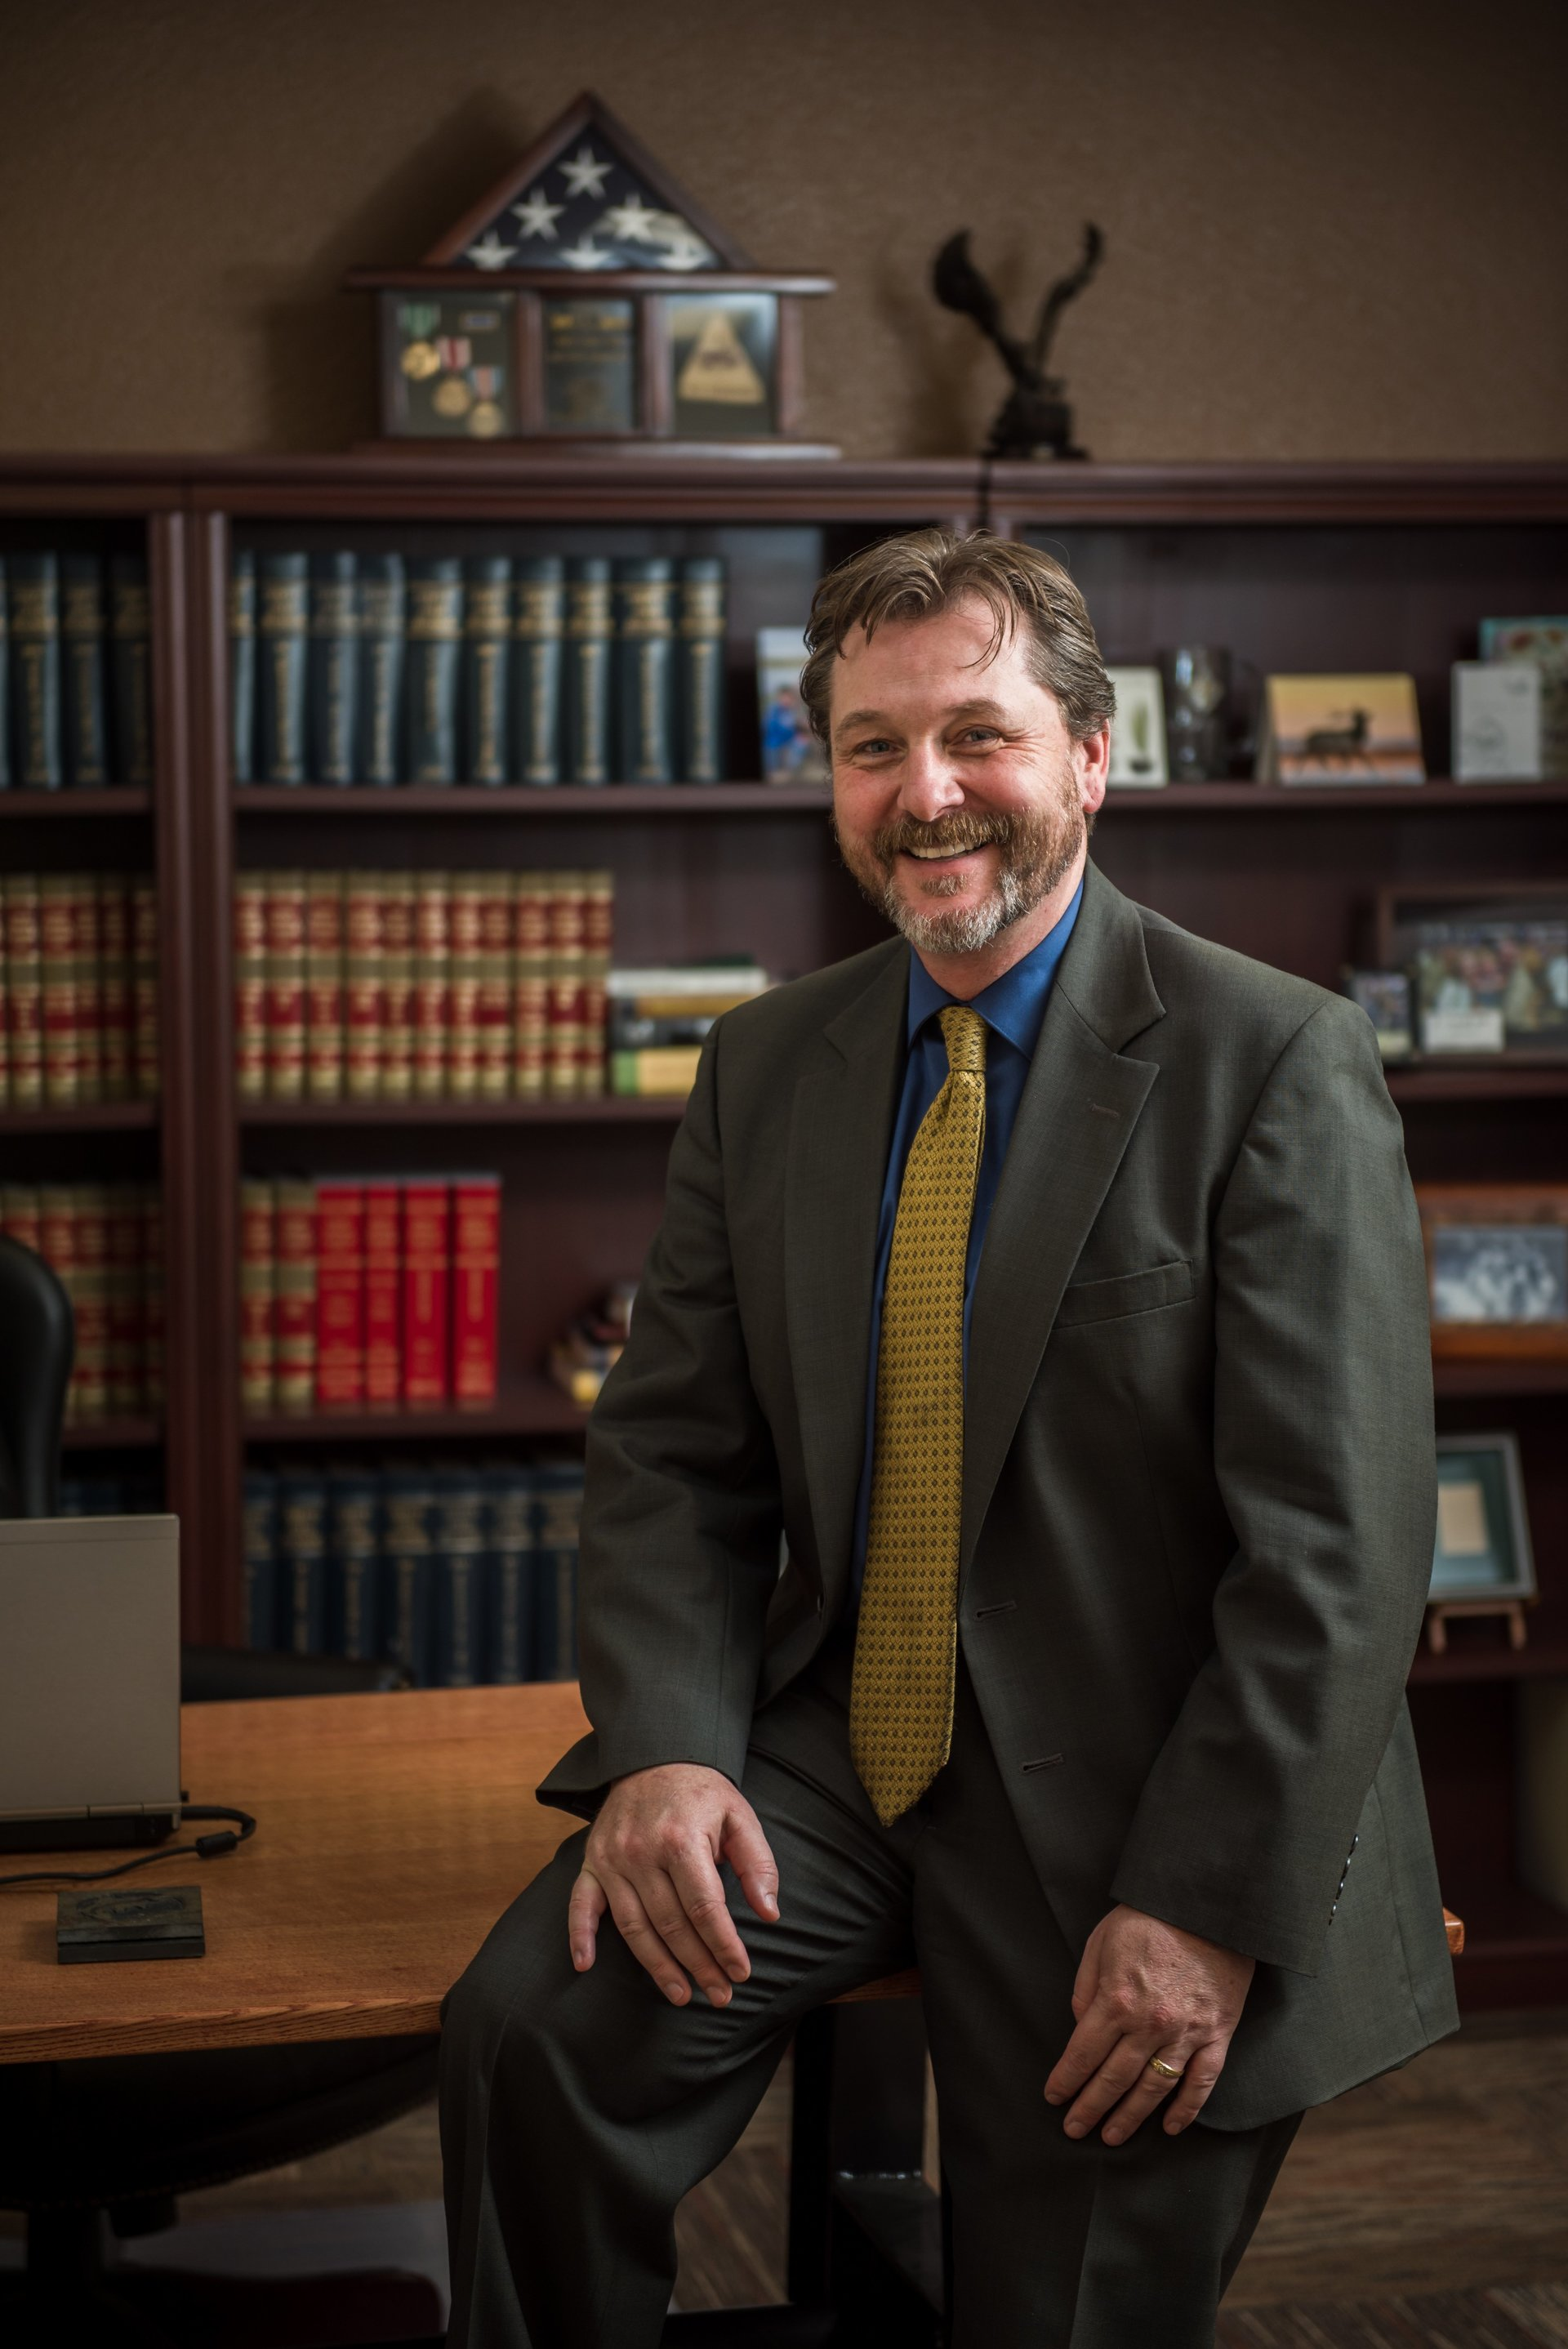 DUI Attorney Jim Sword - Pennington County, SD - DUIAttorney.com